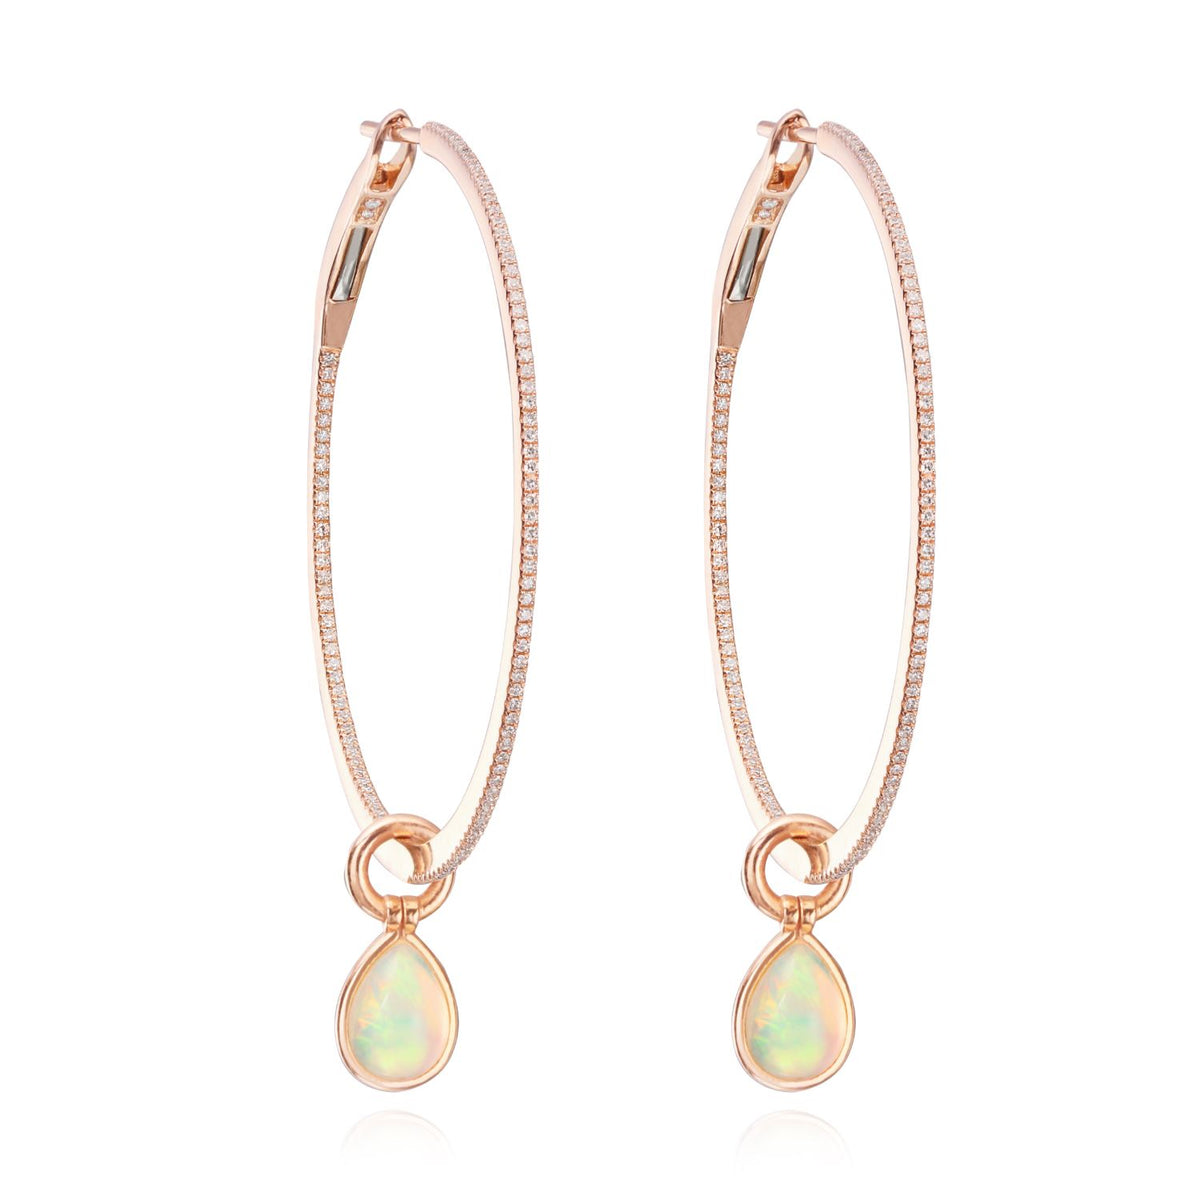 Medium Hoops with Opal Flip Charms - Nina Runsdorf